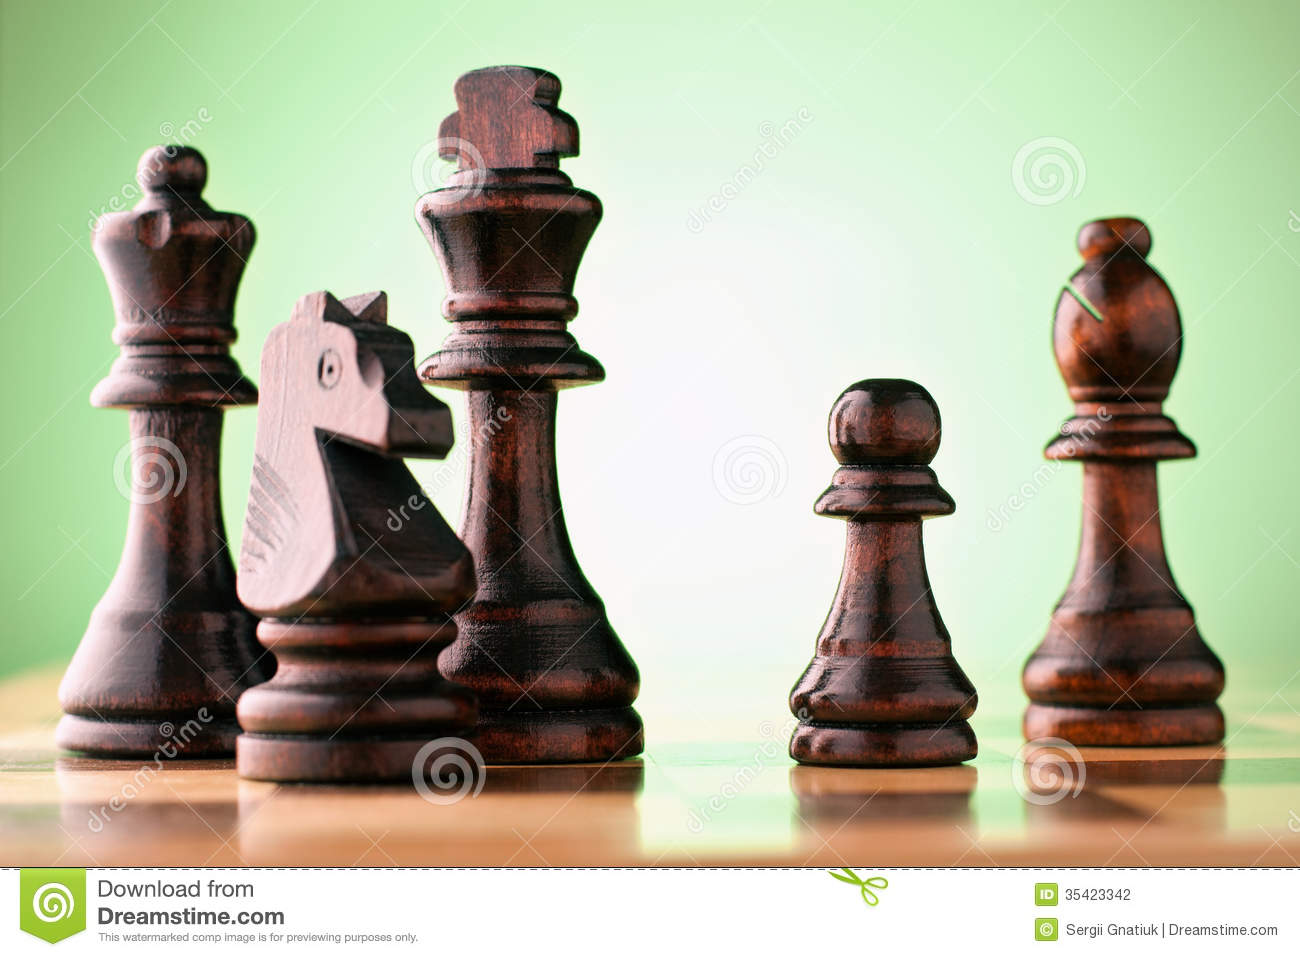 Download Wooden Chess Pieces On A Chessboard Stock Photo - Image of competition, success: 35423342